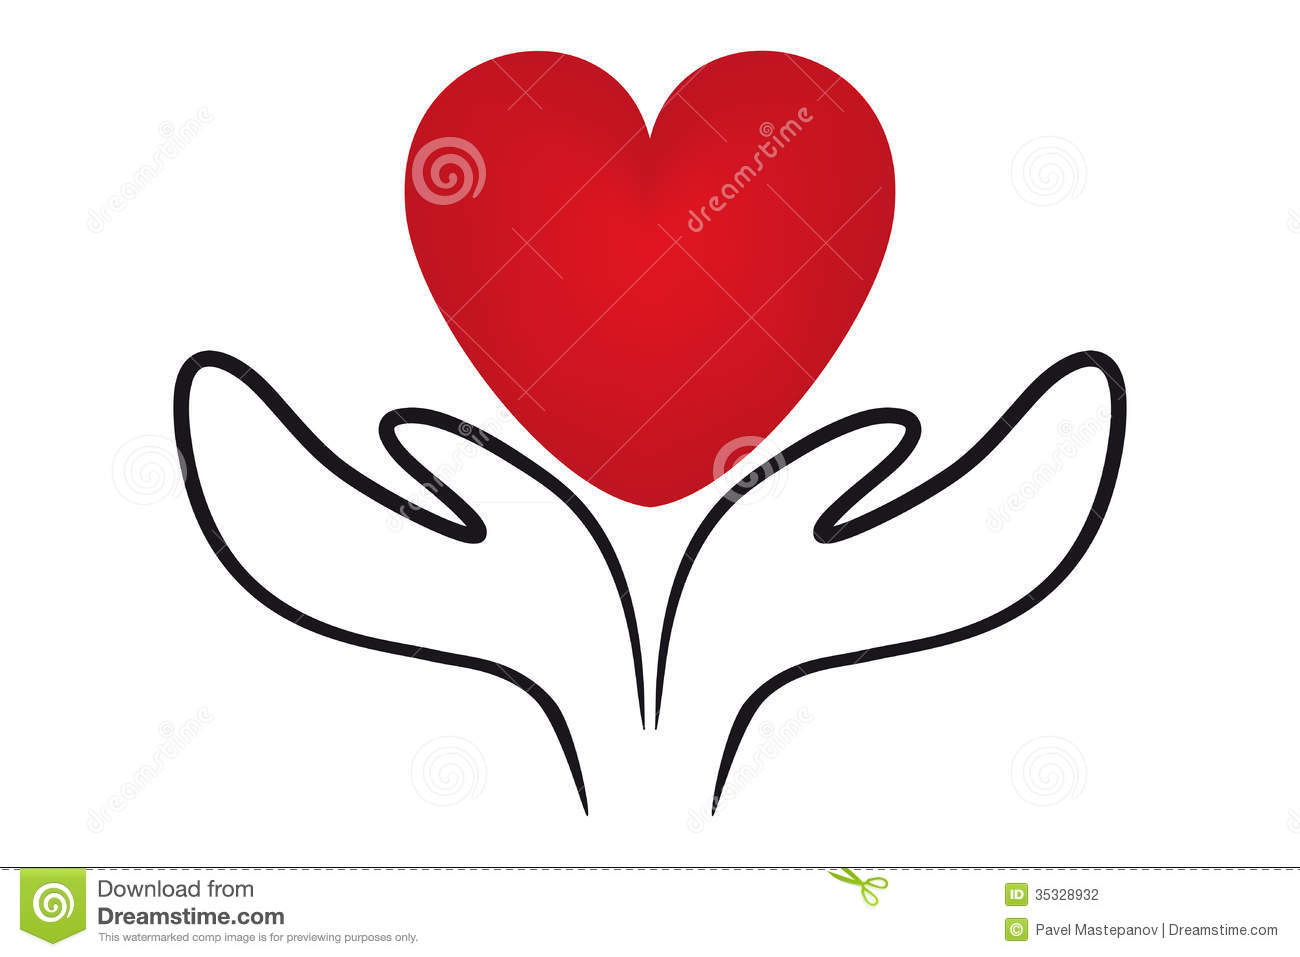 icons of hands holding a heart symbol stock vector